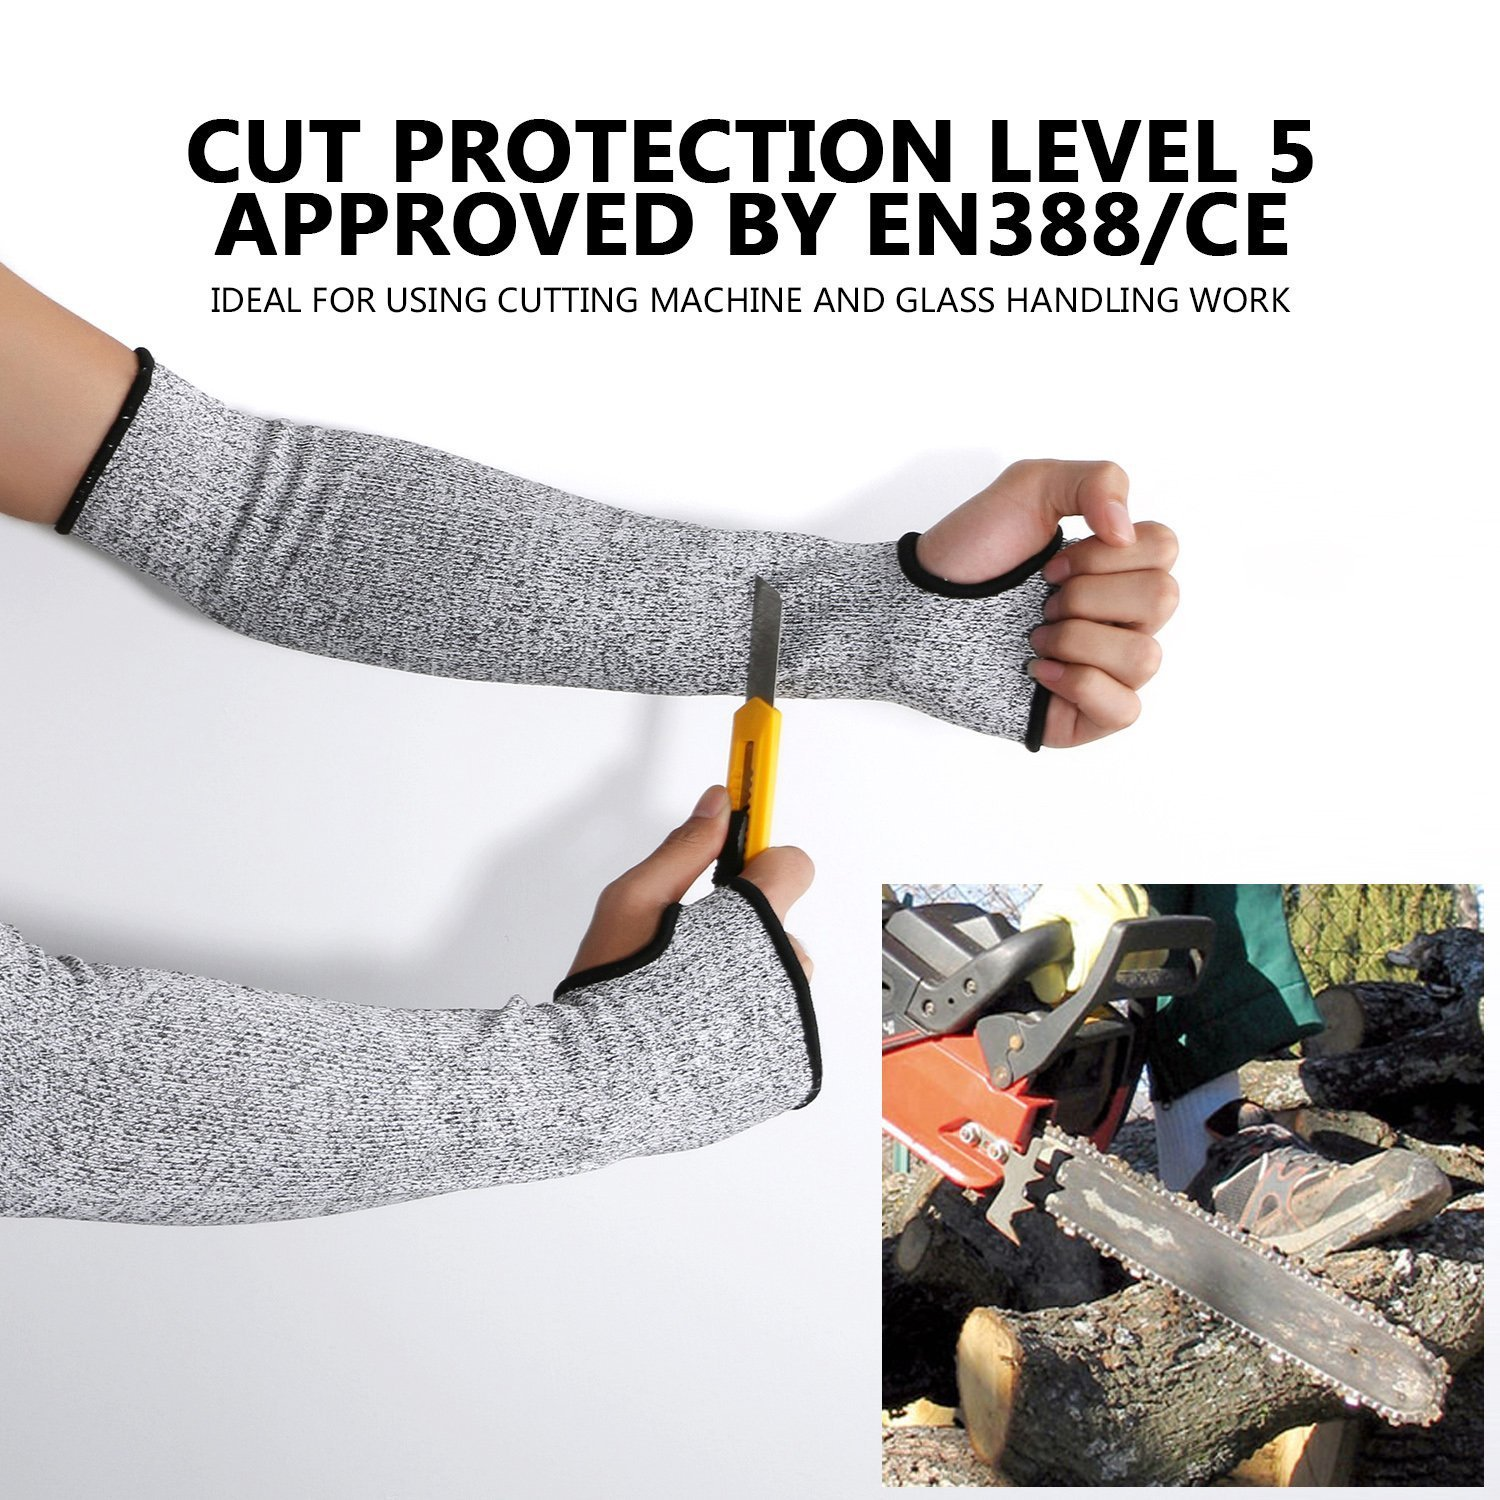 Cut Resistant Sleeves with Thumb Hole, Level 5 Protection, Slash Resistant Safety Protective Arm Sleeves, 14 inch long, Large (Arm width 4-8 inch) sold by Pair(2 Pieces) by G & F Products (Image #6)